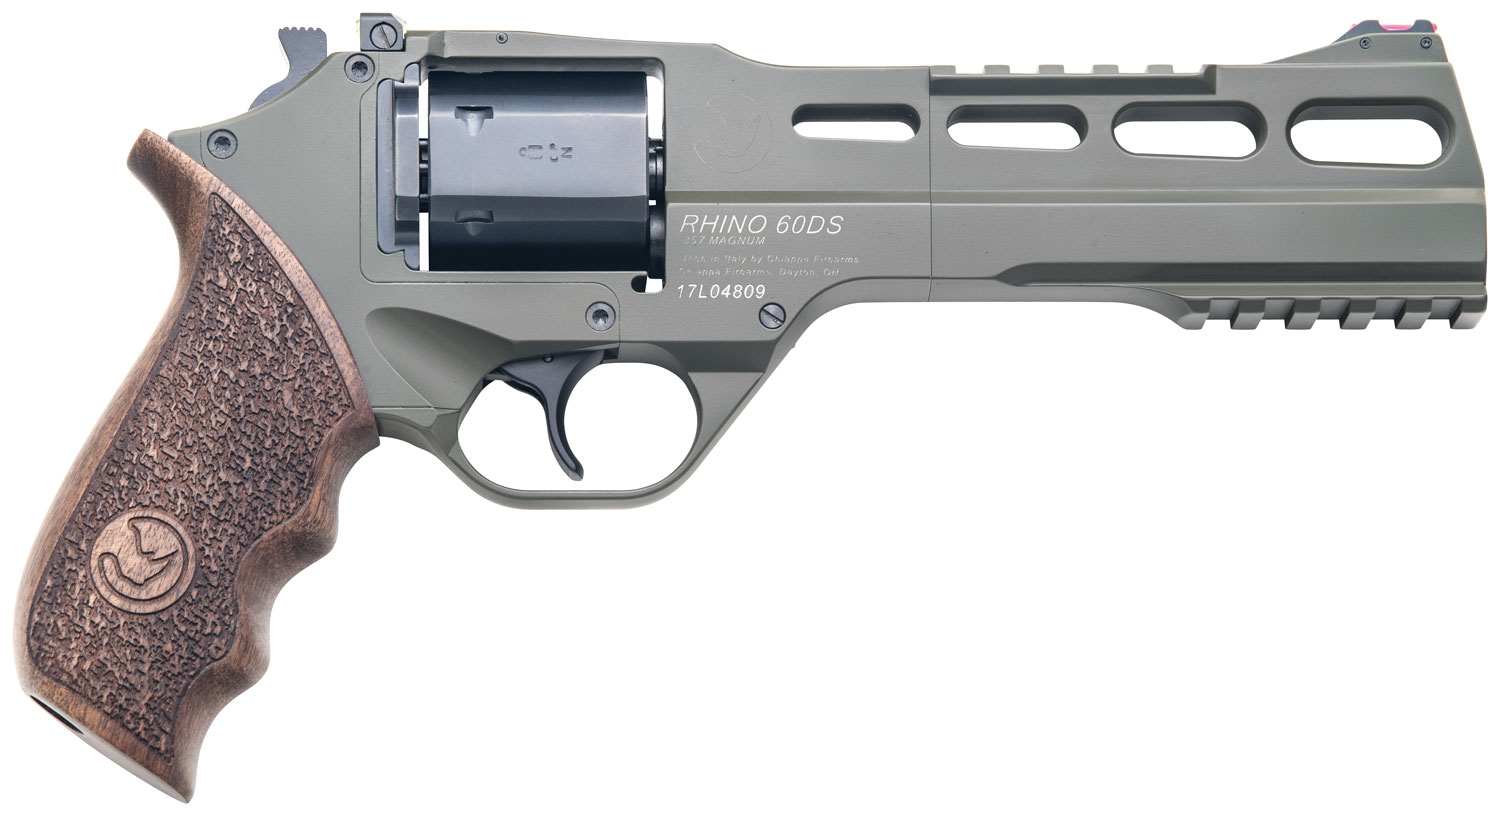 Chiappa Firearms 340282 Rhino 60DS Single/Double 357 Magnum 6